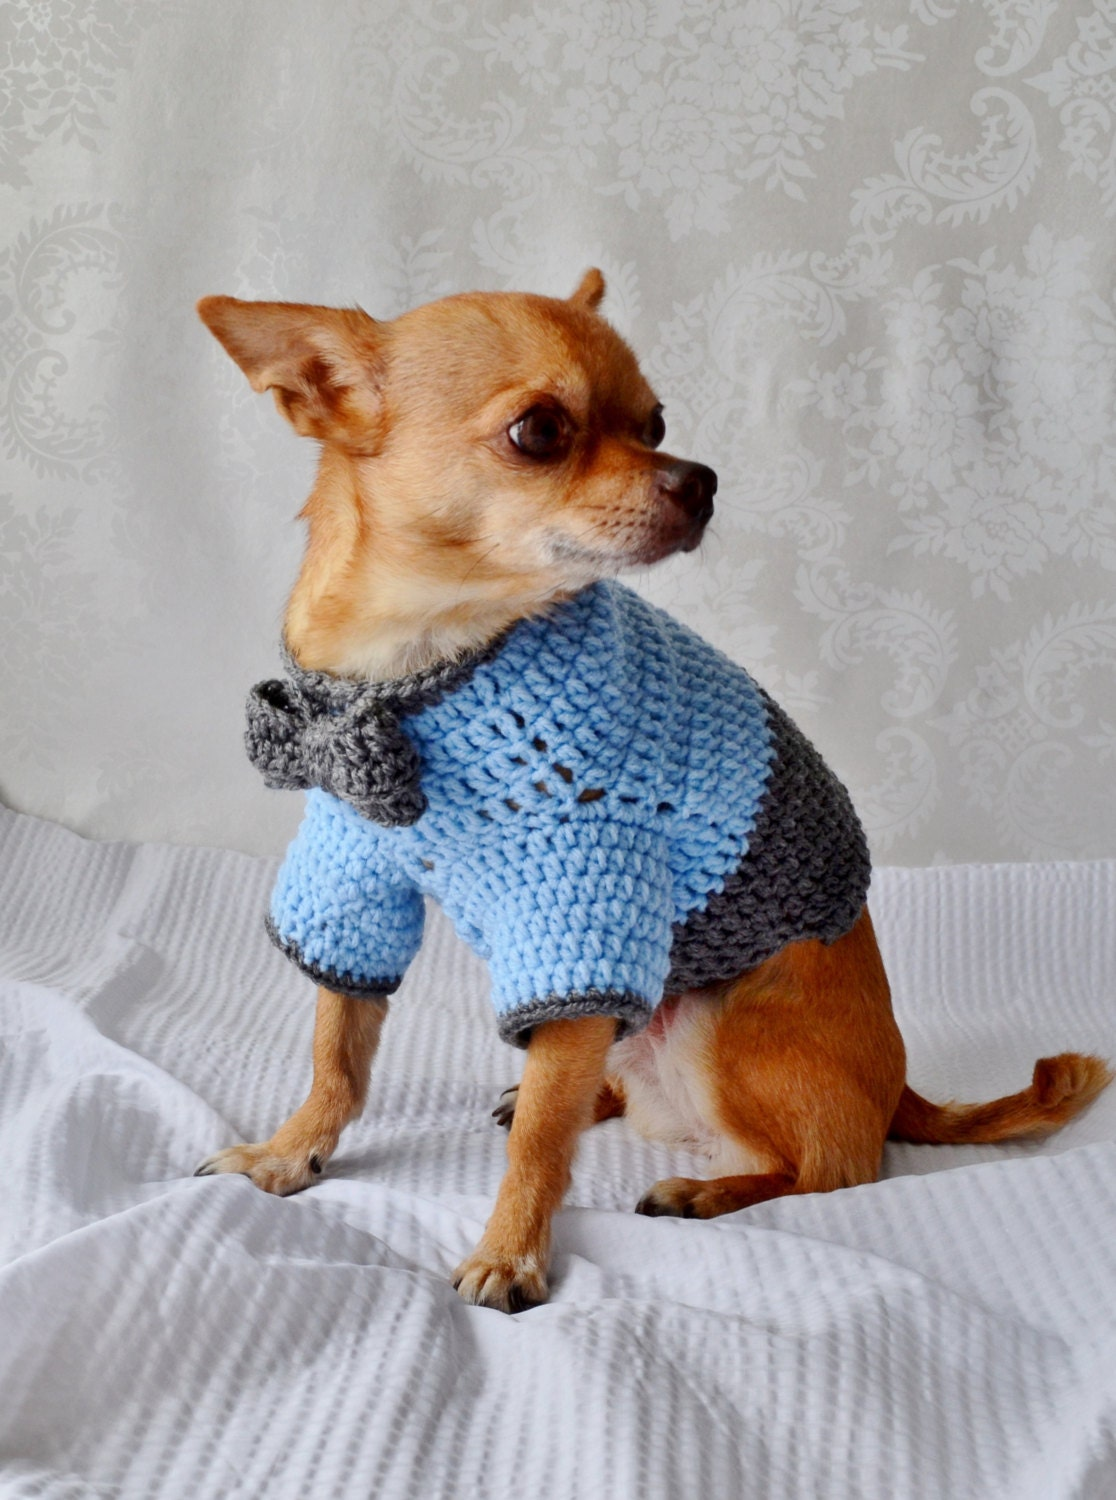 Crochet Xl Dog Sweater : Crochet Dog Sweater Dog Sweater with Bow The Oxford by lukesmom6